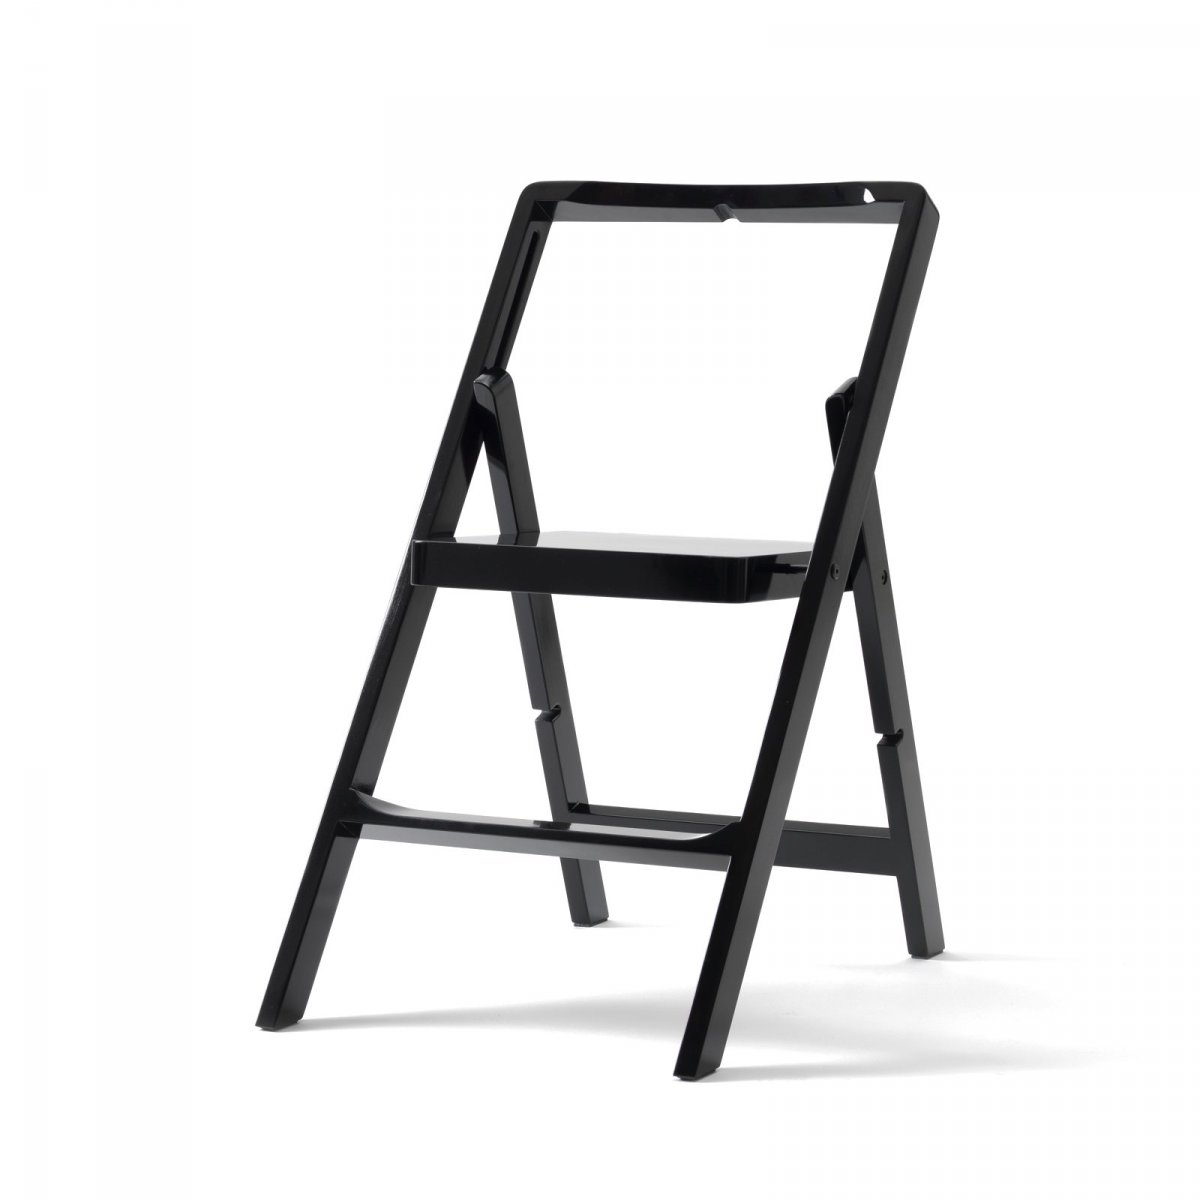 Step Mini step stool, black.